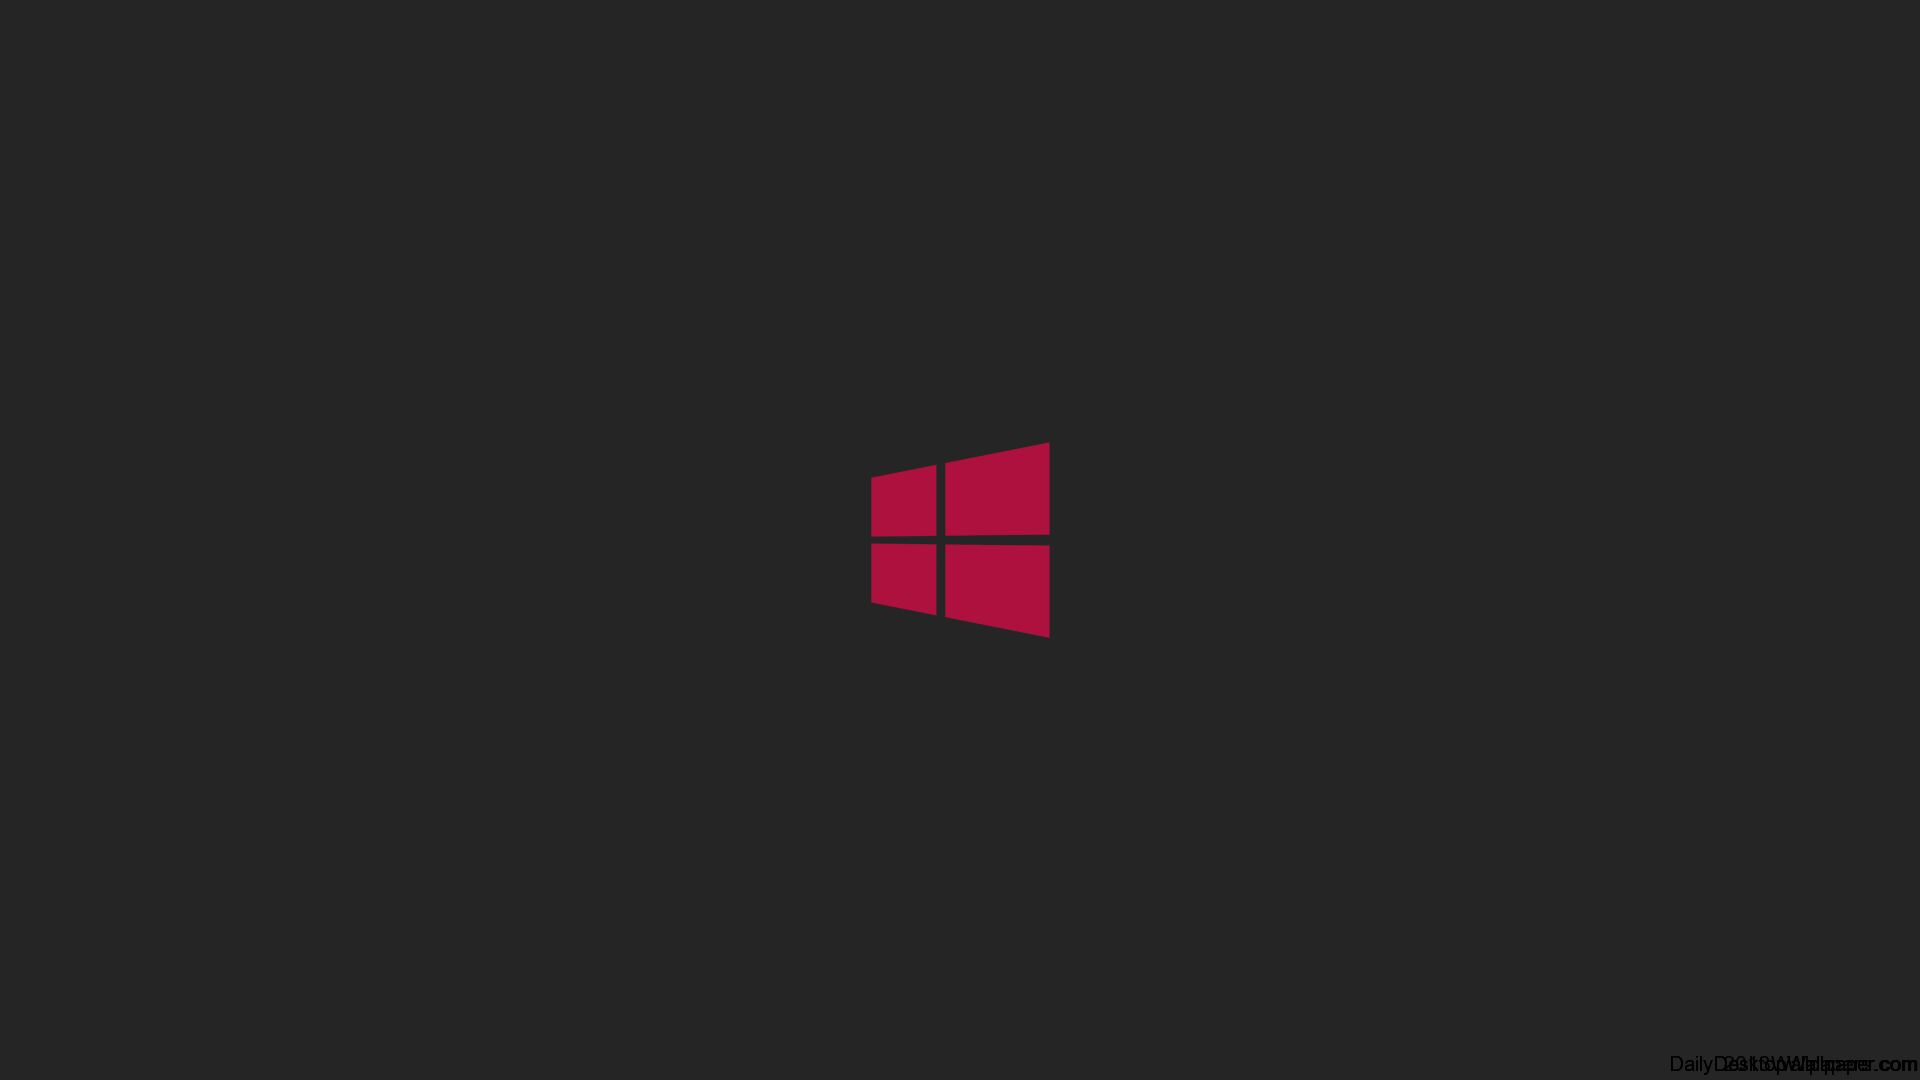 Black Windows Logo Wallpapers Top Free Black Windows Logo Backgrounds Wallpaperaccess